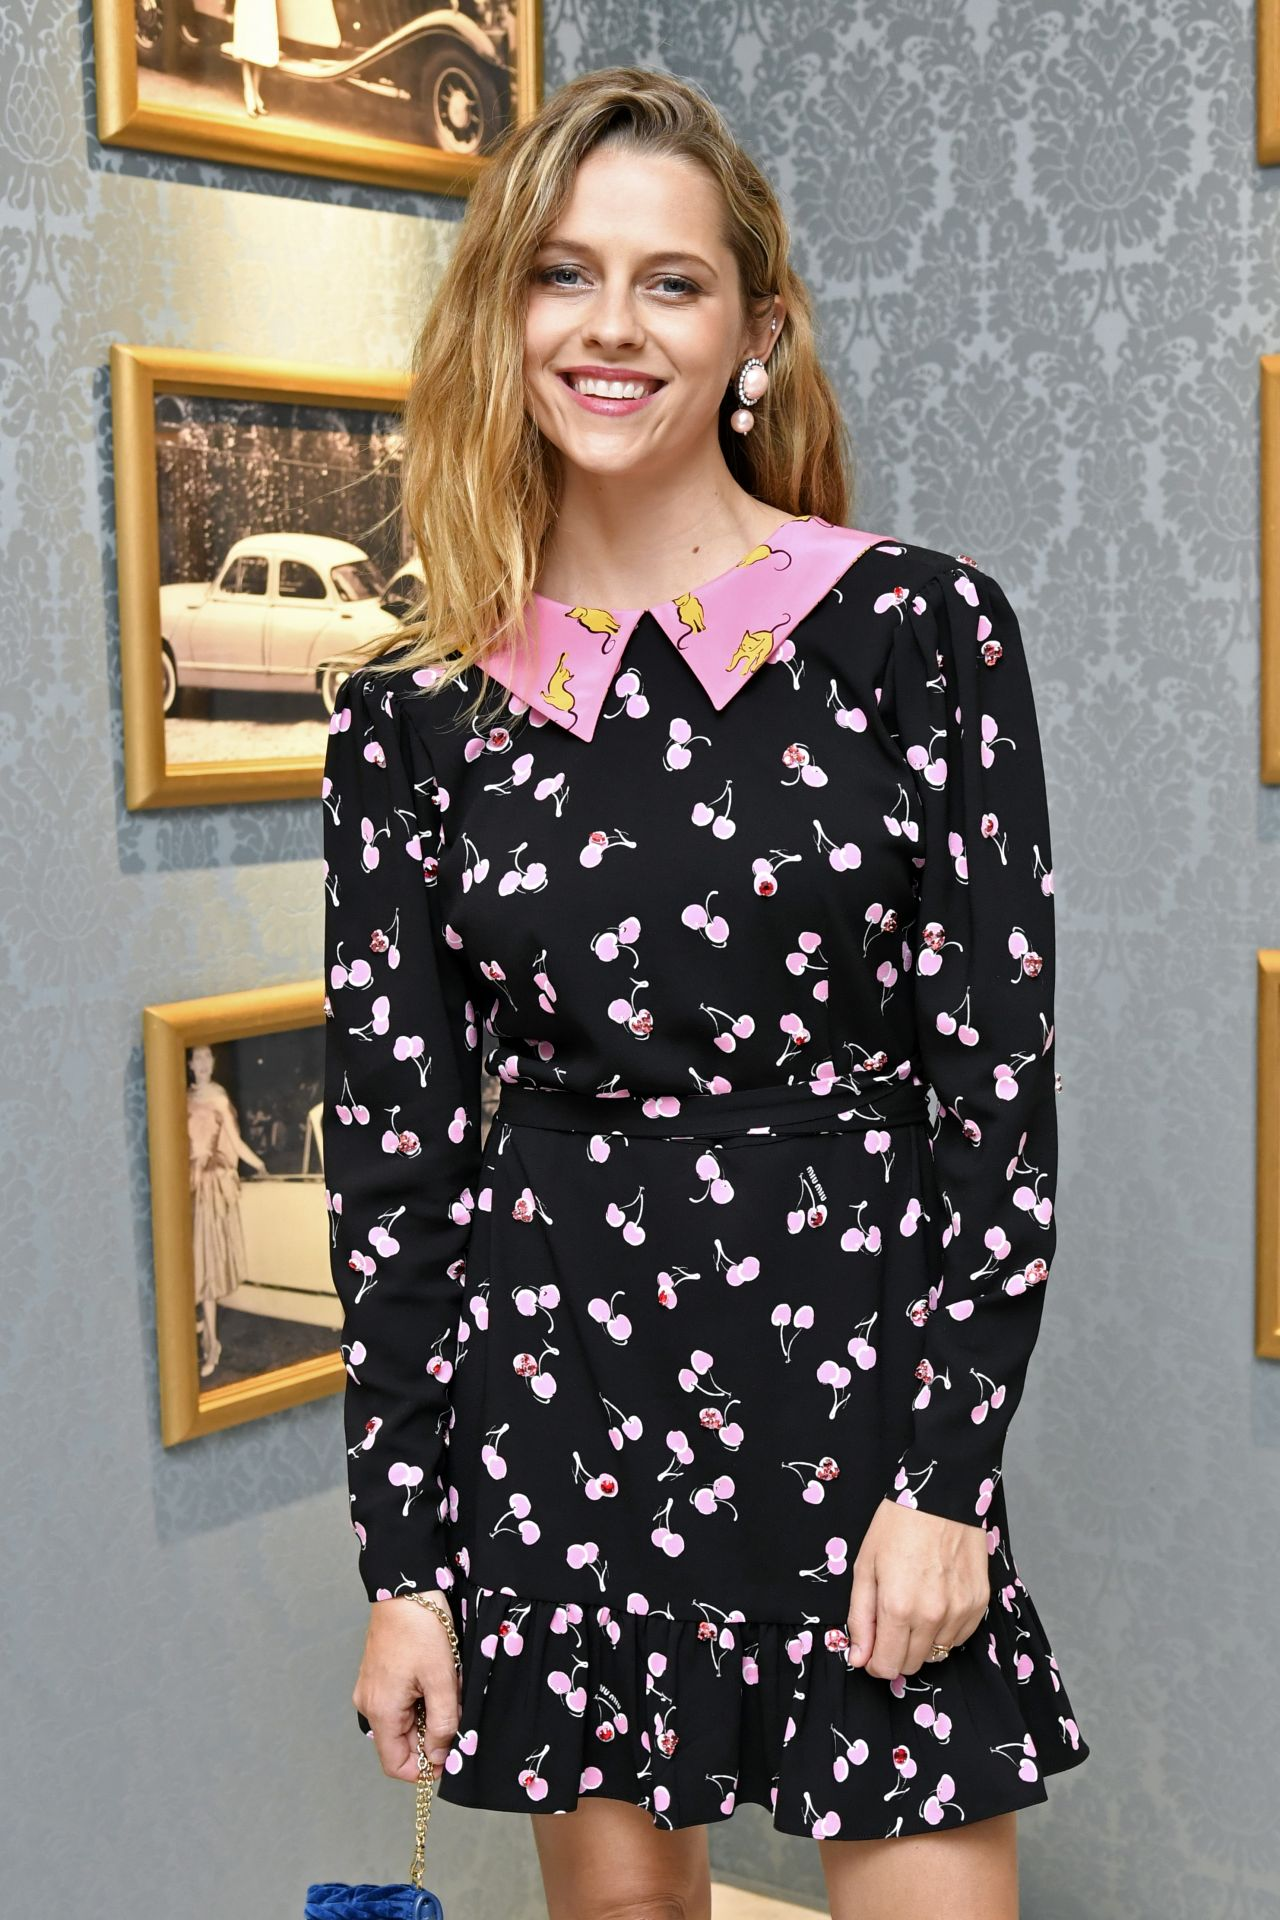 http://celebmafia.com/wp-content/uploads/2017/07/teresa-palmer-miu-miu-dinner-at-haute-couture-fashion-week-in-paris-07-02-2017-1.jpg